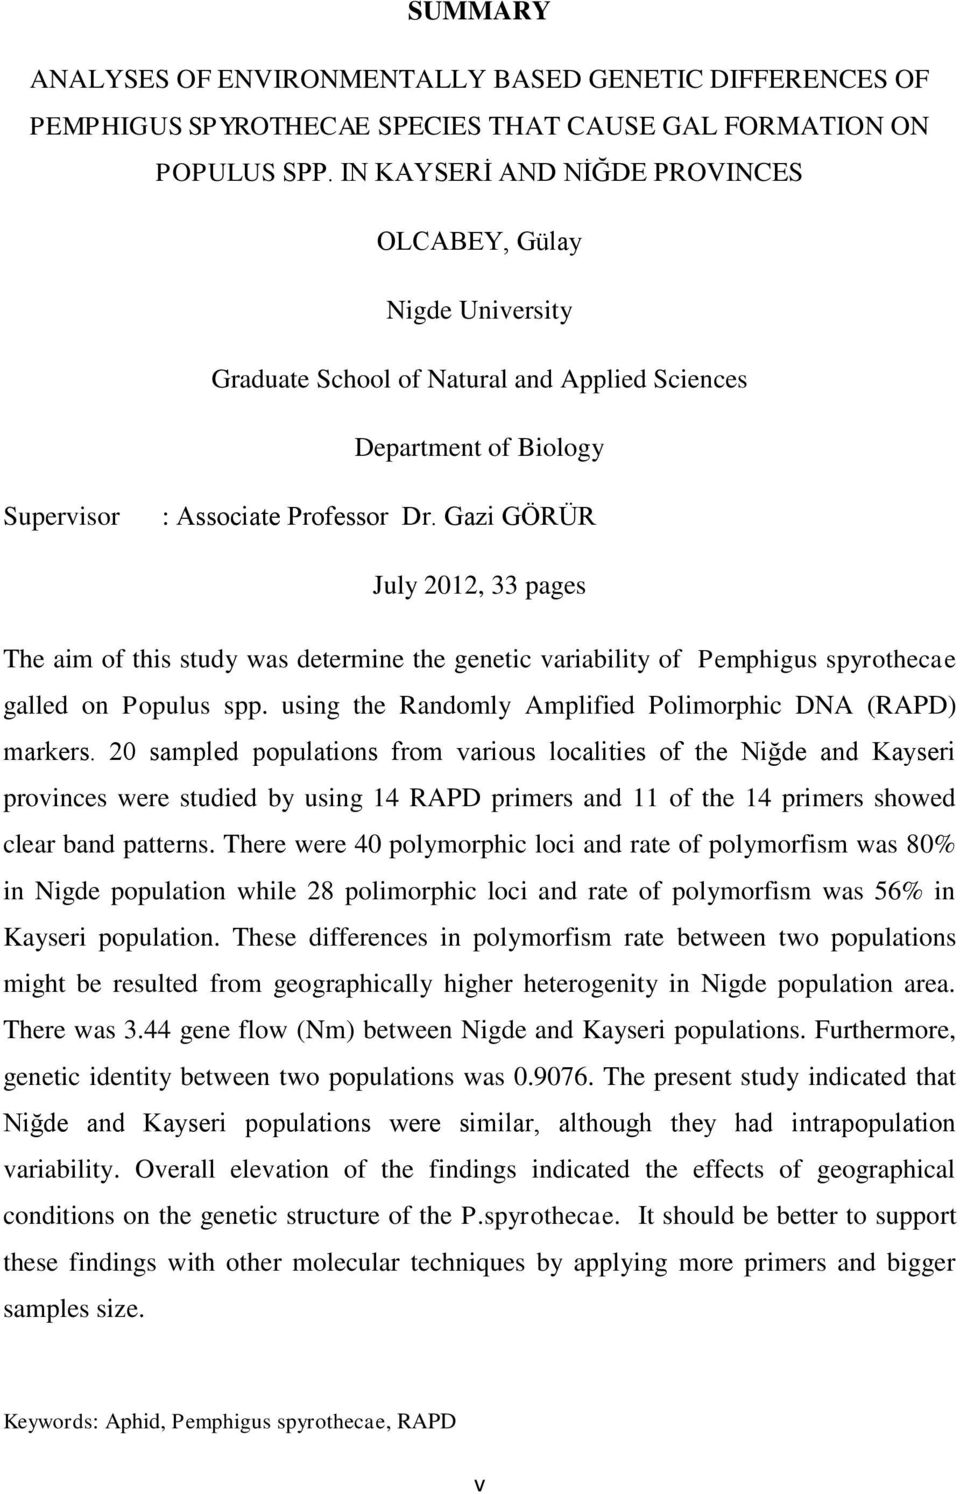 Gazi GÖRÜR July 2012, 33 pages The aim of this study was determine the genetic variability of Pemphigus spyrothecae galled on Populus spp. using the Randomly Amplified Polimorphic DNA (RAPD) markers.